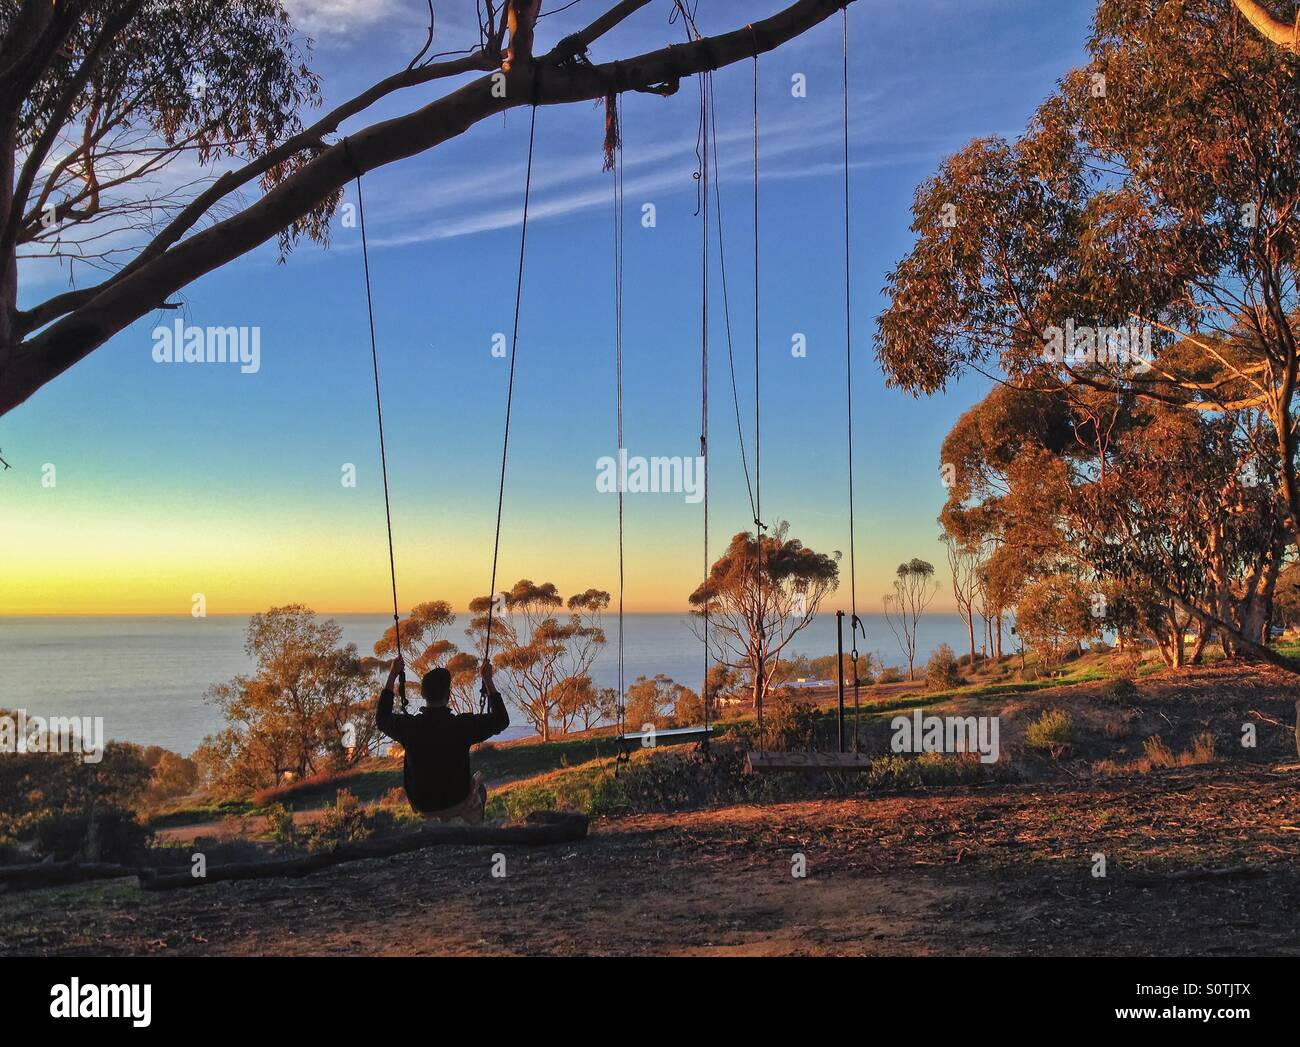 Man swinging on a swing set and enjoying a sunset view over the Pacific Ocean, La Jolla, California, USA - Stock Image